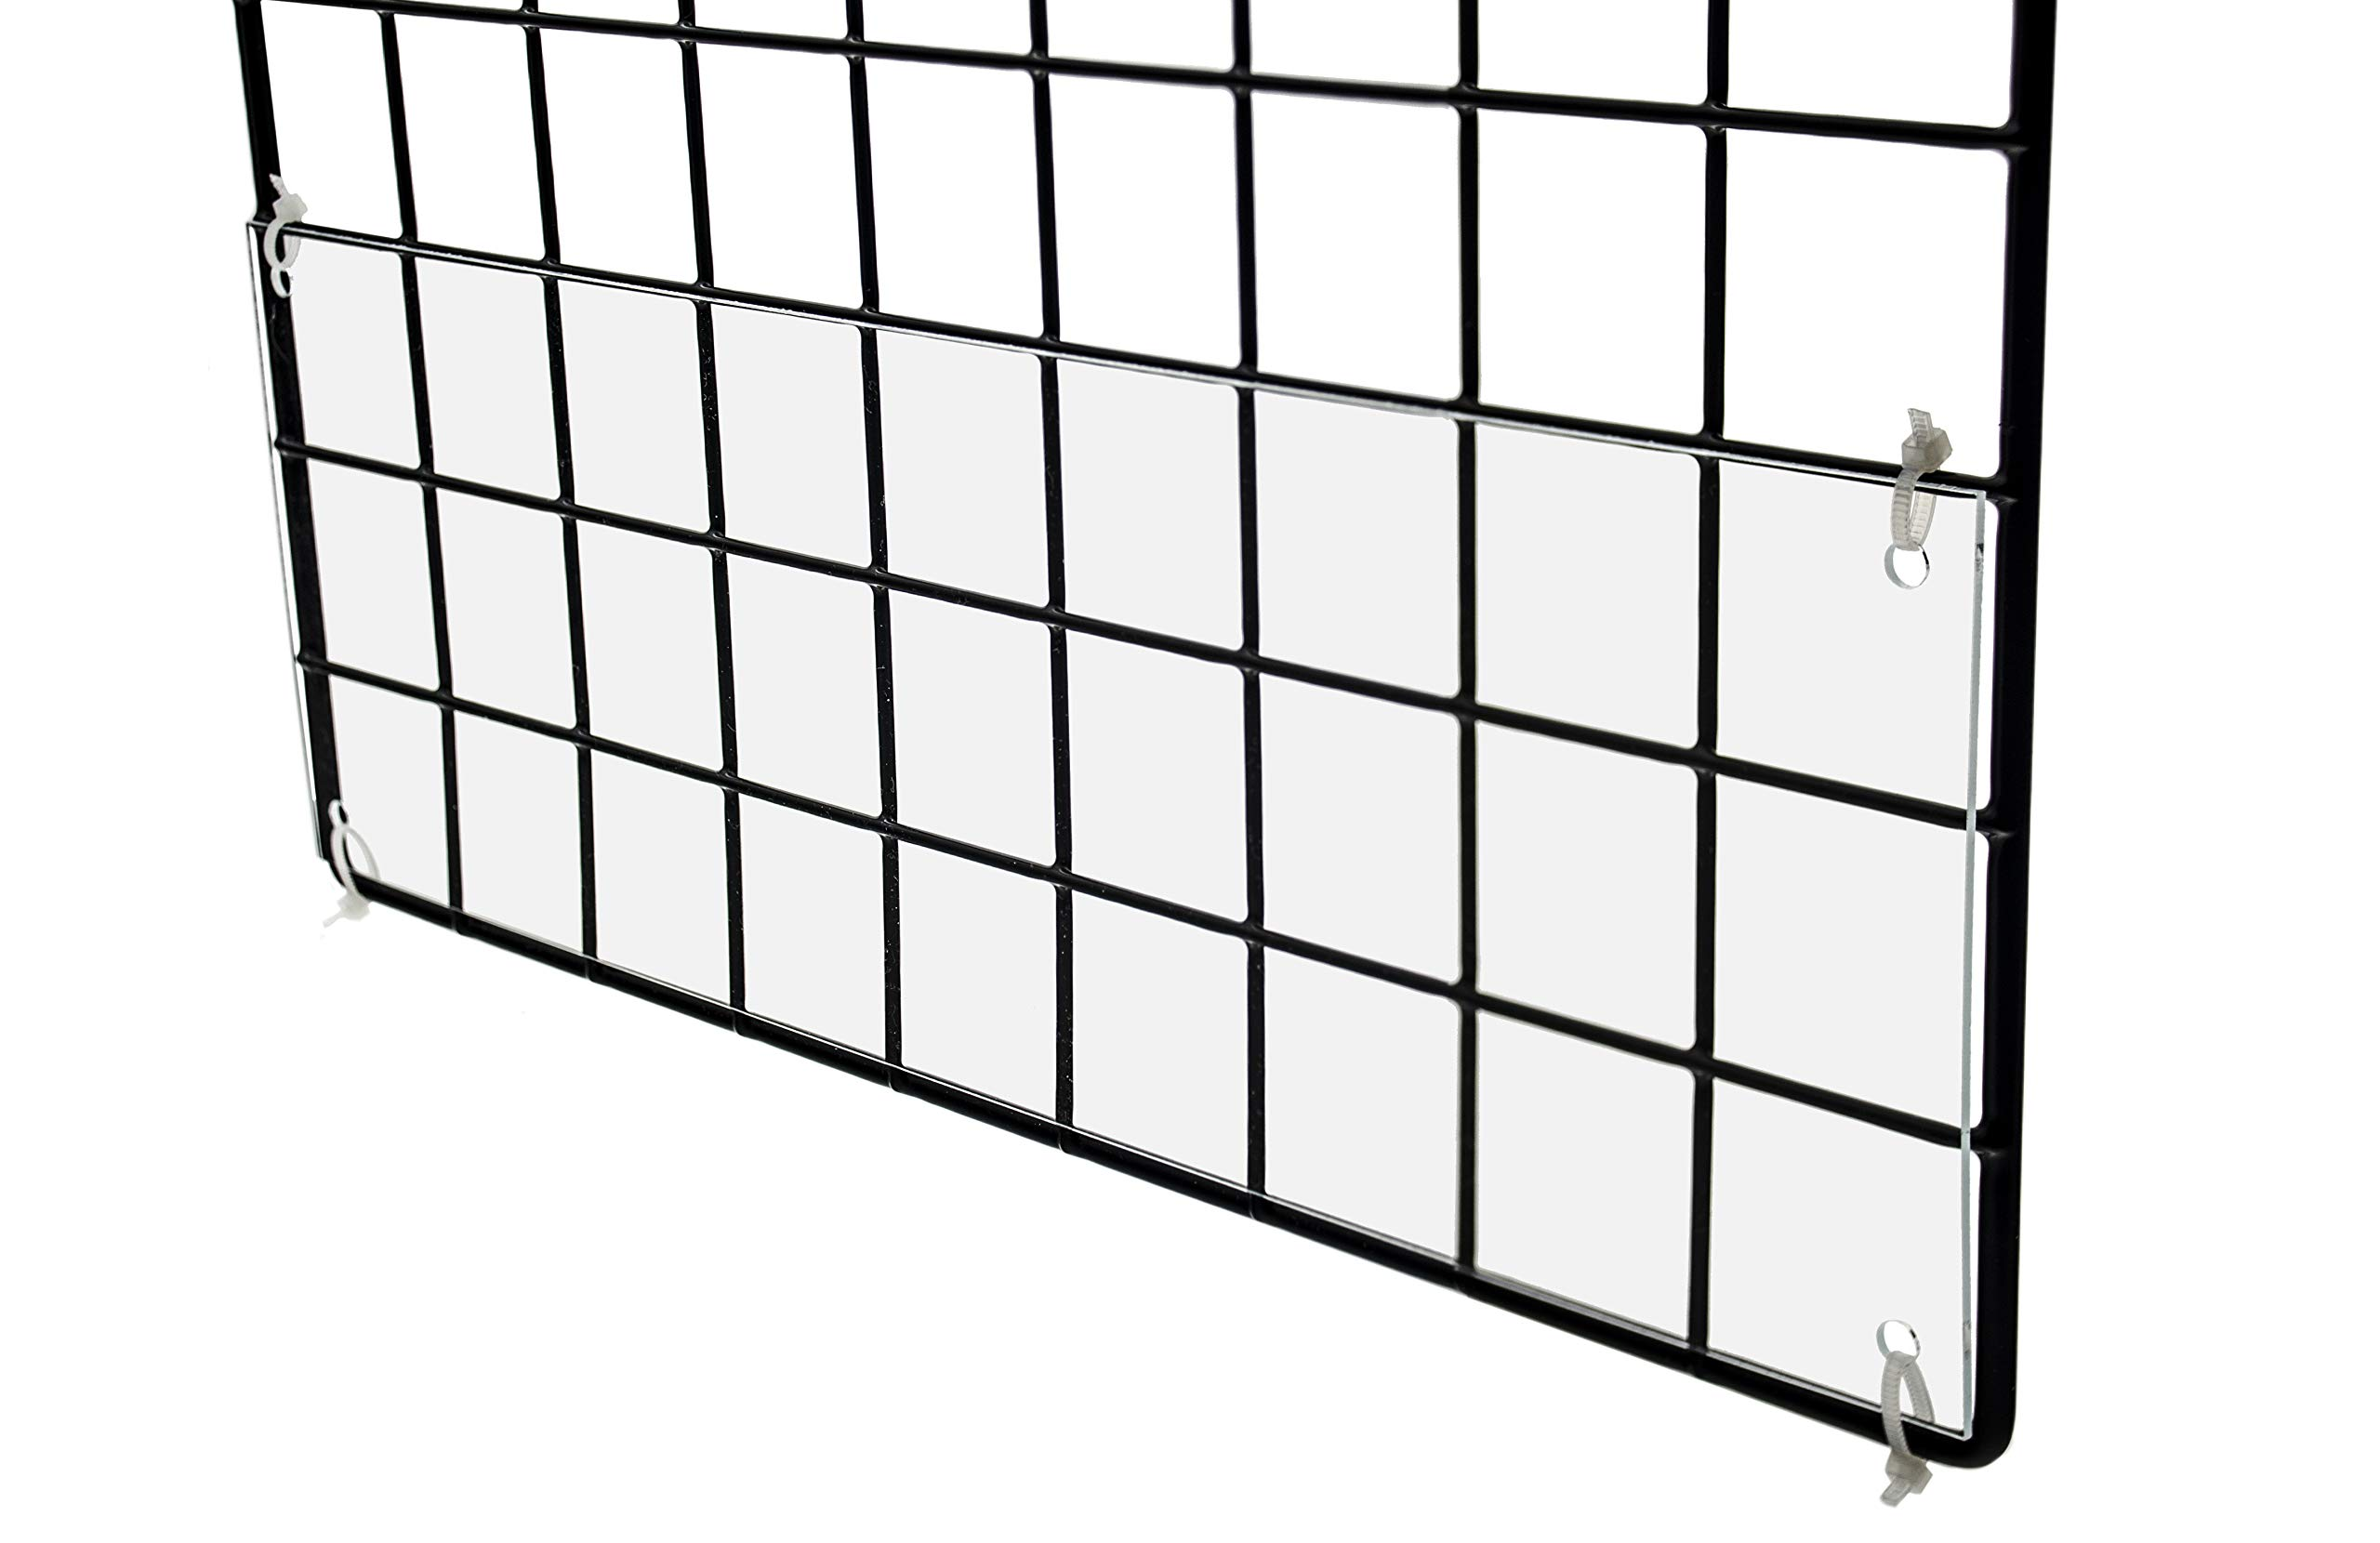 Marketing Holders Cage Edge Liner pet Rabbit & Guinea Pig cage Urine Guard Side Lining 8 Pack, Qty 1